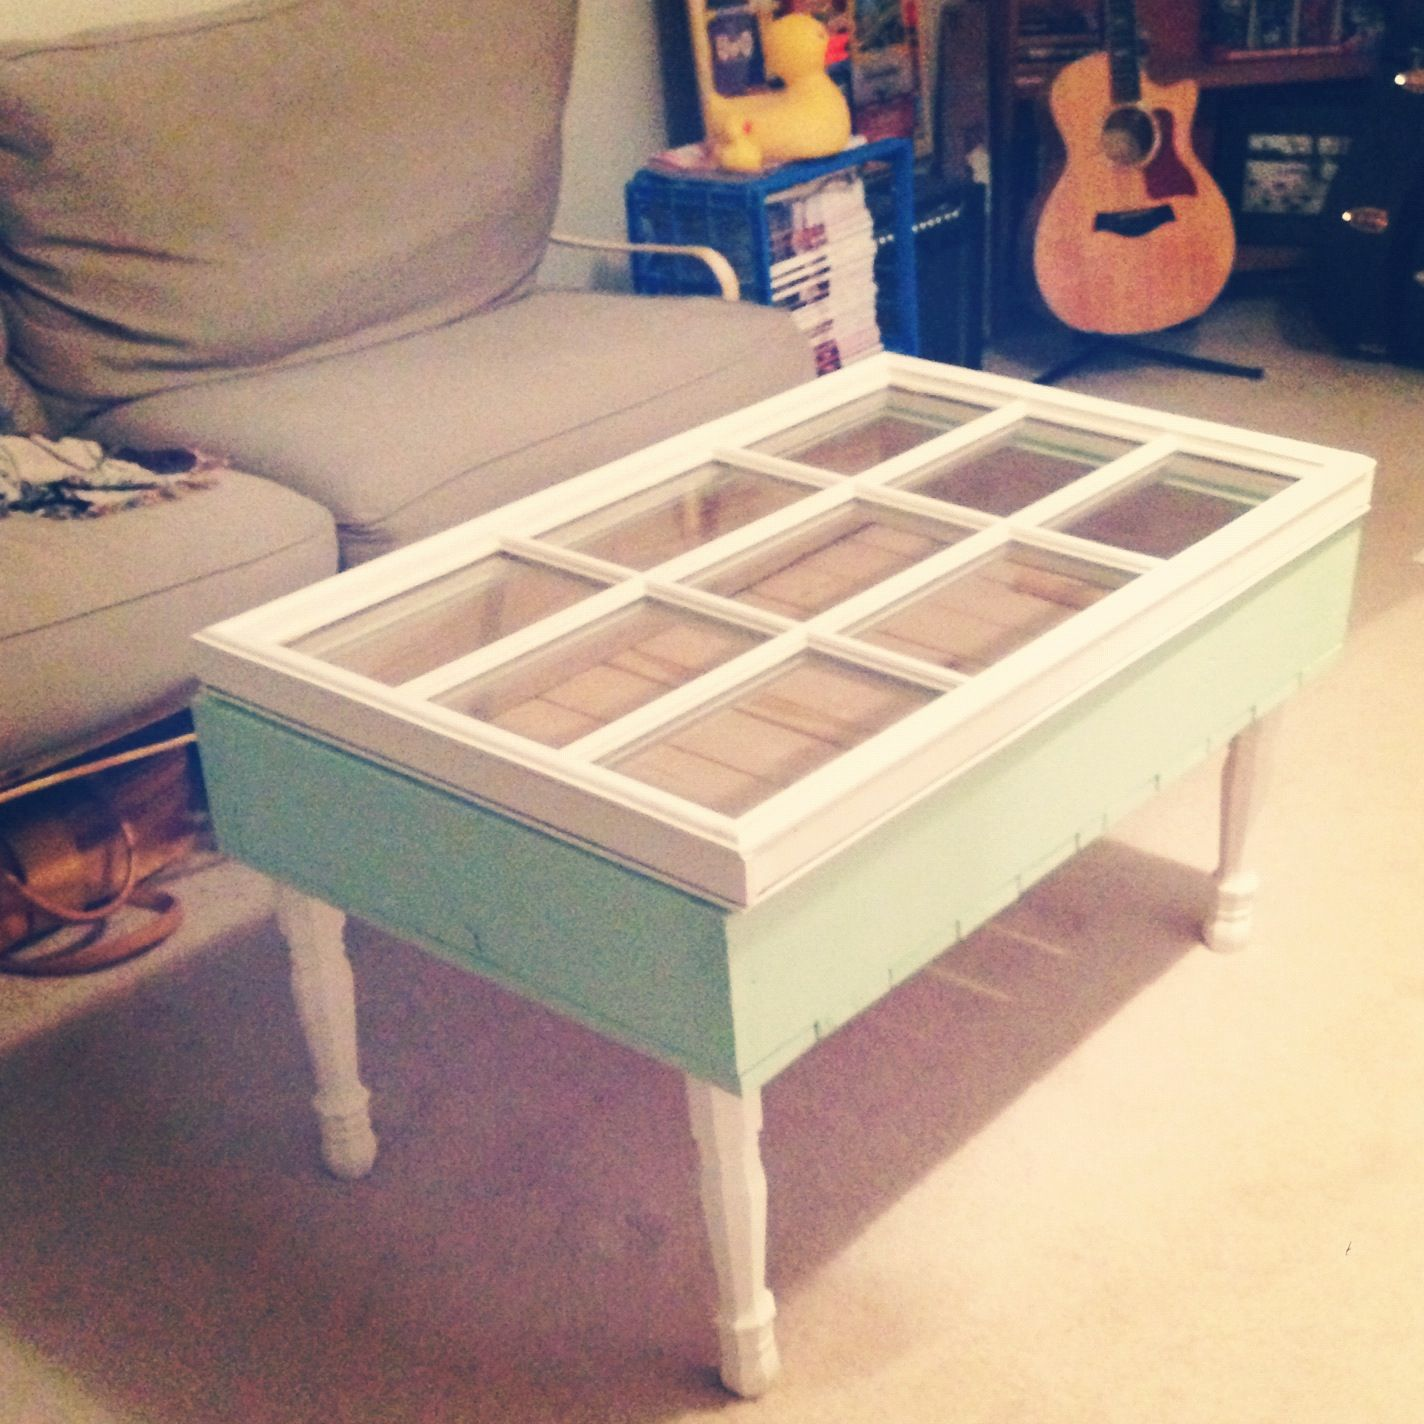 Boyfriend made me this coffee table out of an old window